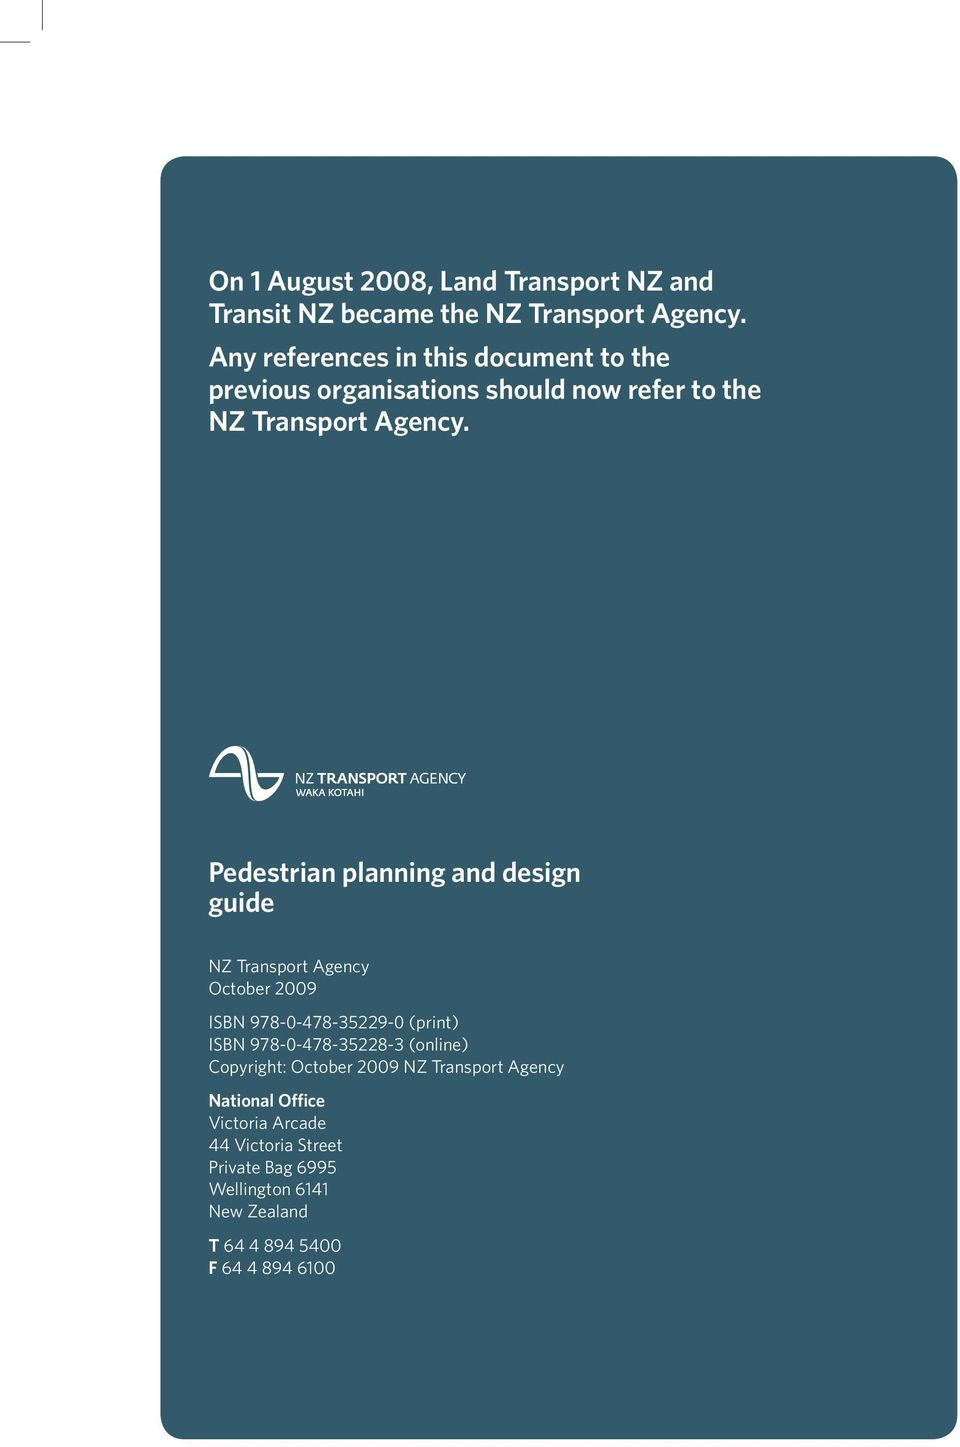 Pedestrian planning and design guide NZ Transport Agency October 2009 ISBN 978-0-478-35229-0 (print) ISBN 978-0-478-35228-3